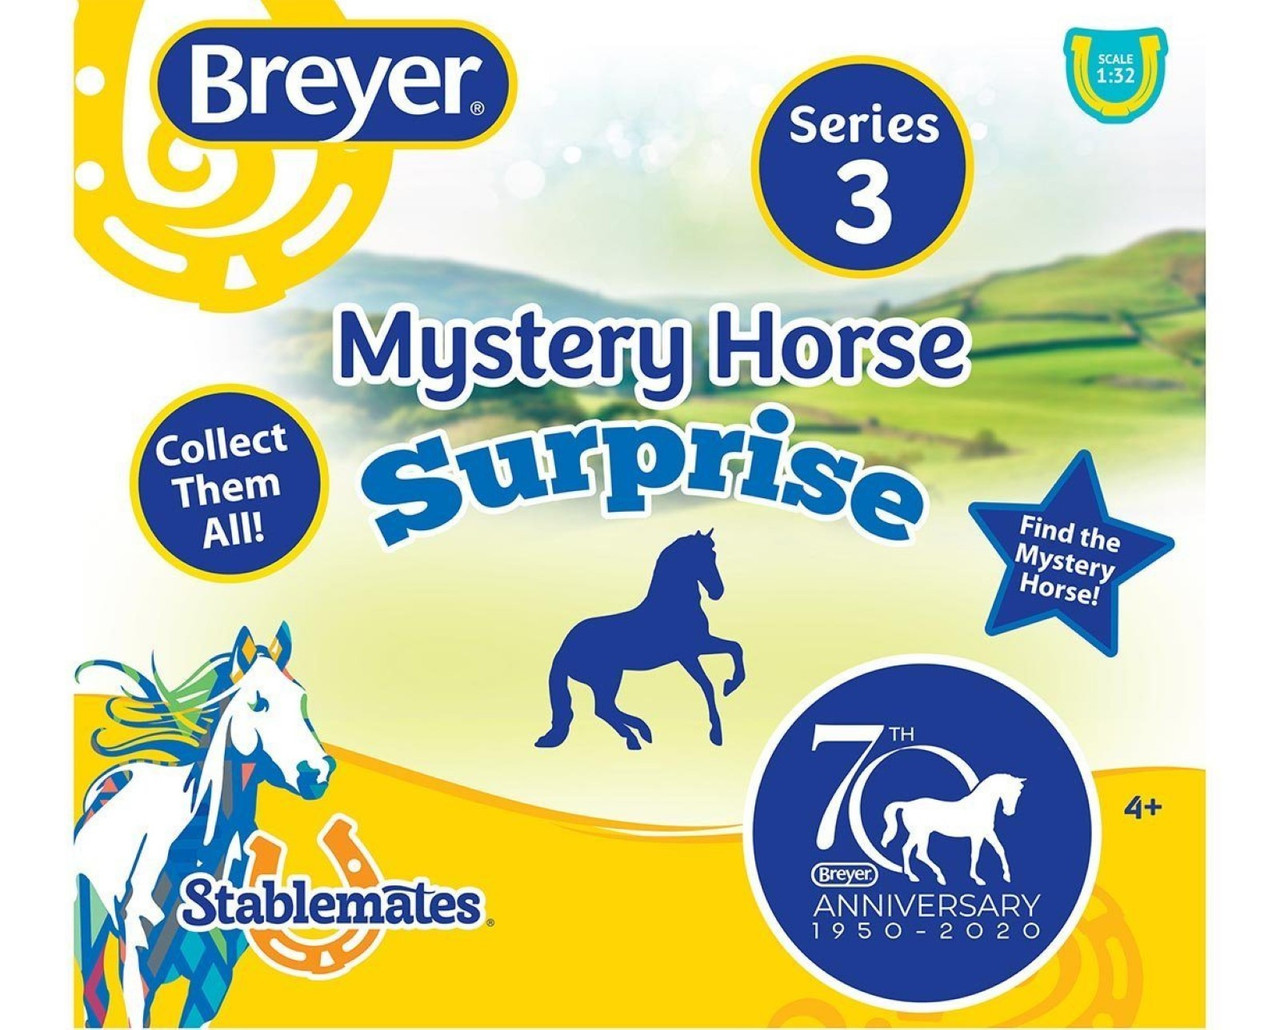 Breyer Horses Stablemates 70th Anniversary Single Blind Bag 1 32 Scale W6051 Model Horses